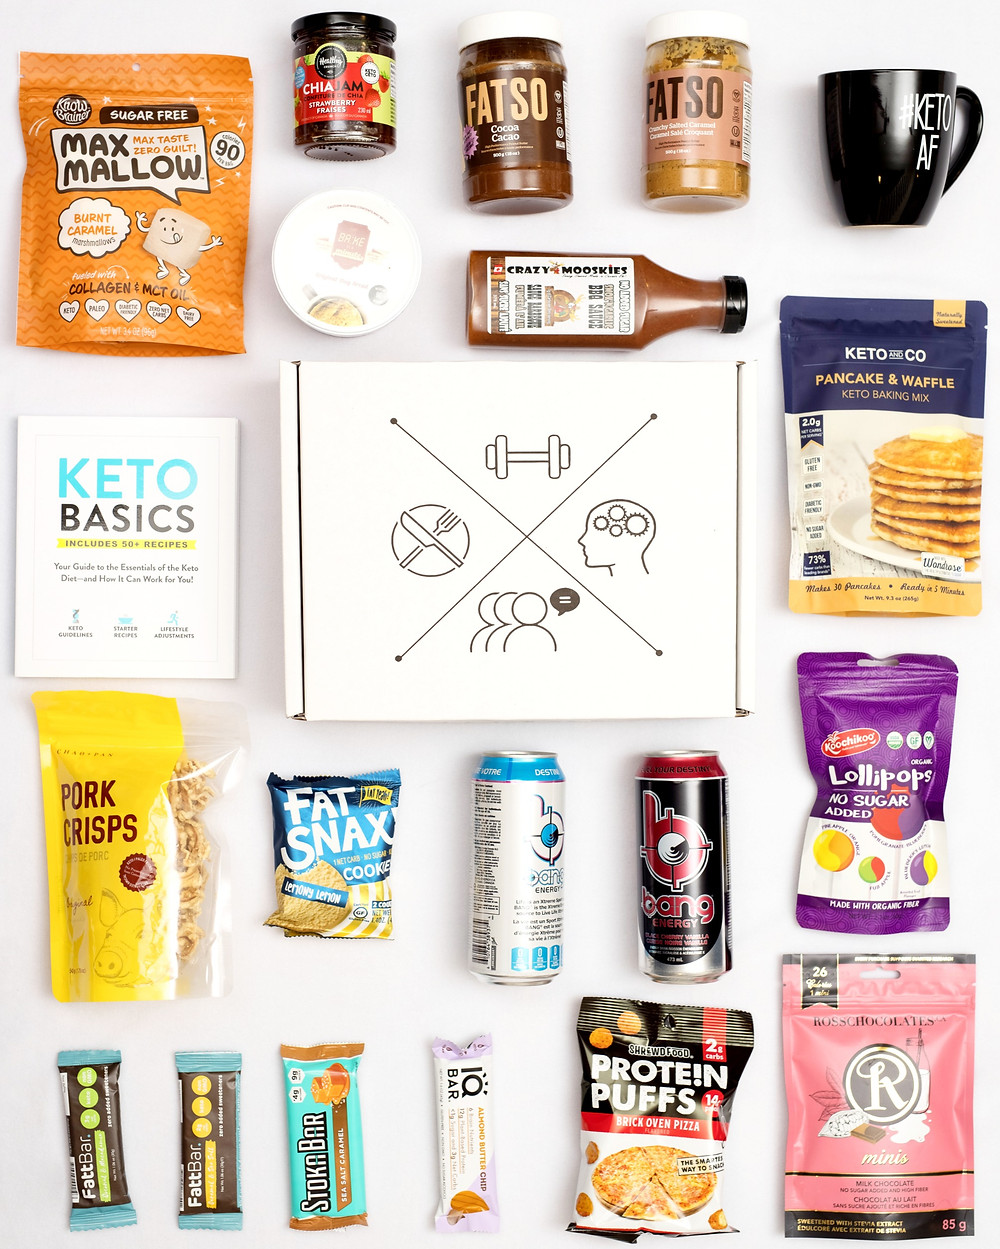 The most popular keto snacks of 2019 from our keto boxes!